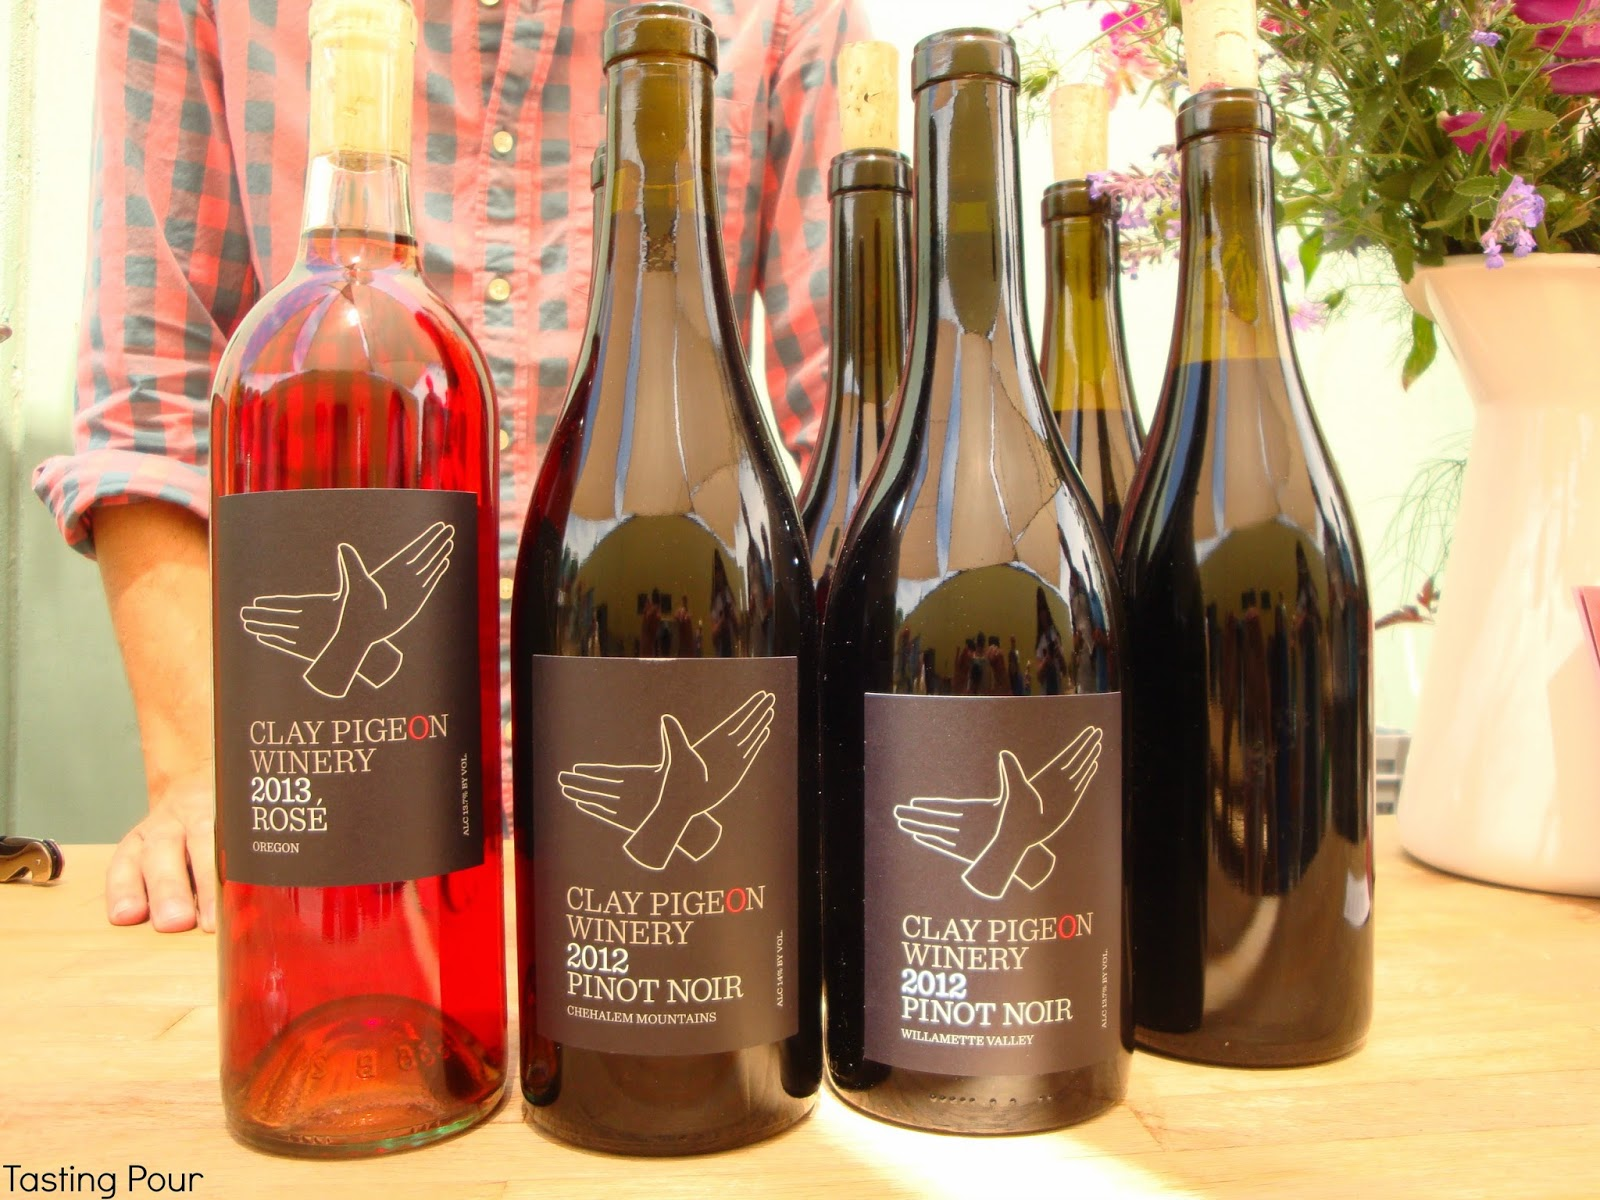 Clay Pigeon Winery's Current Release